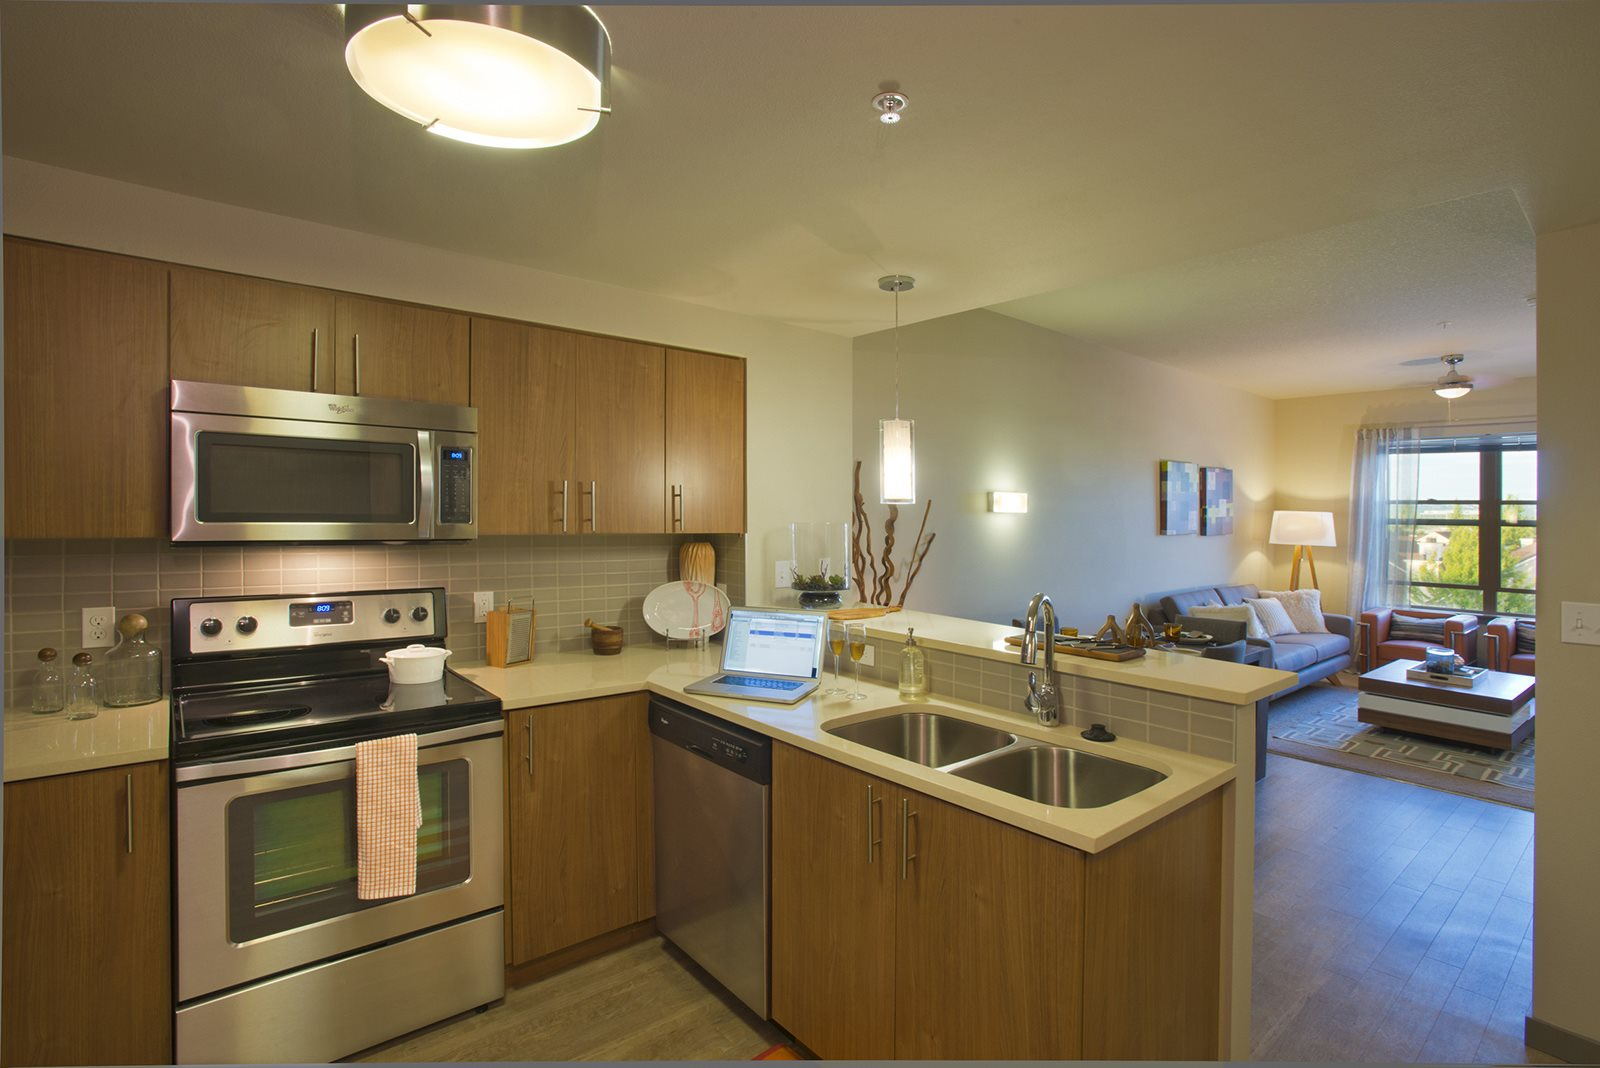 Open-Concept Kitchens with Open Kitchens at Platform 14, 97124, OR